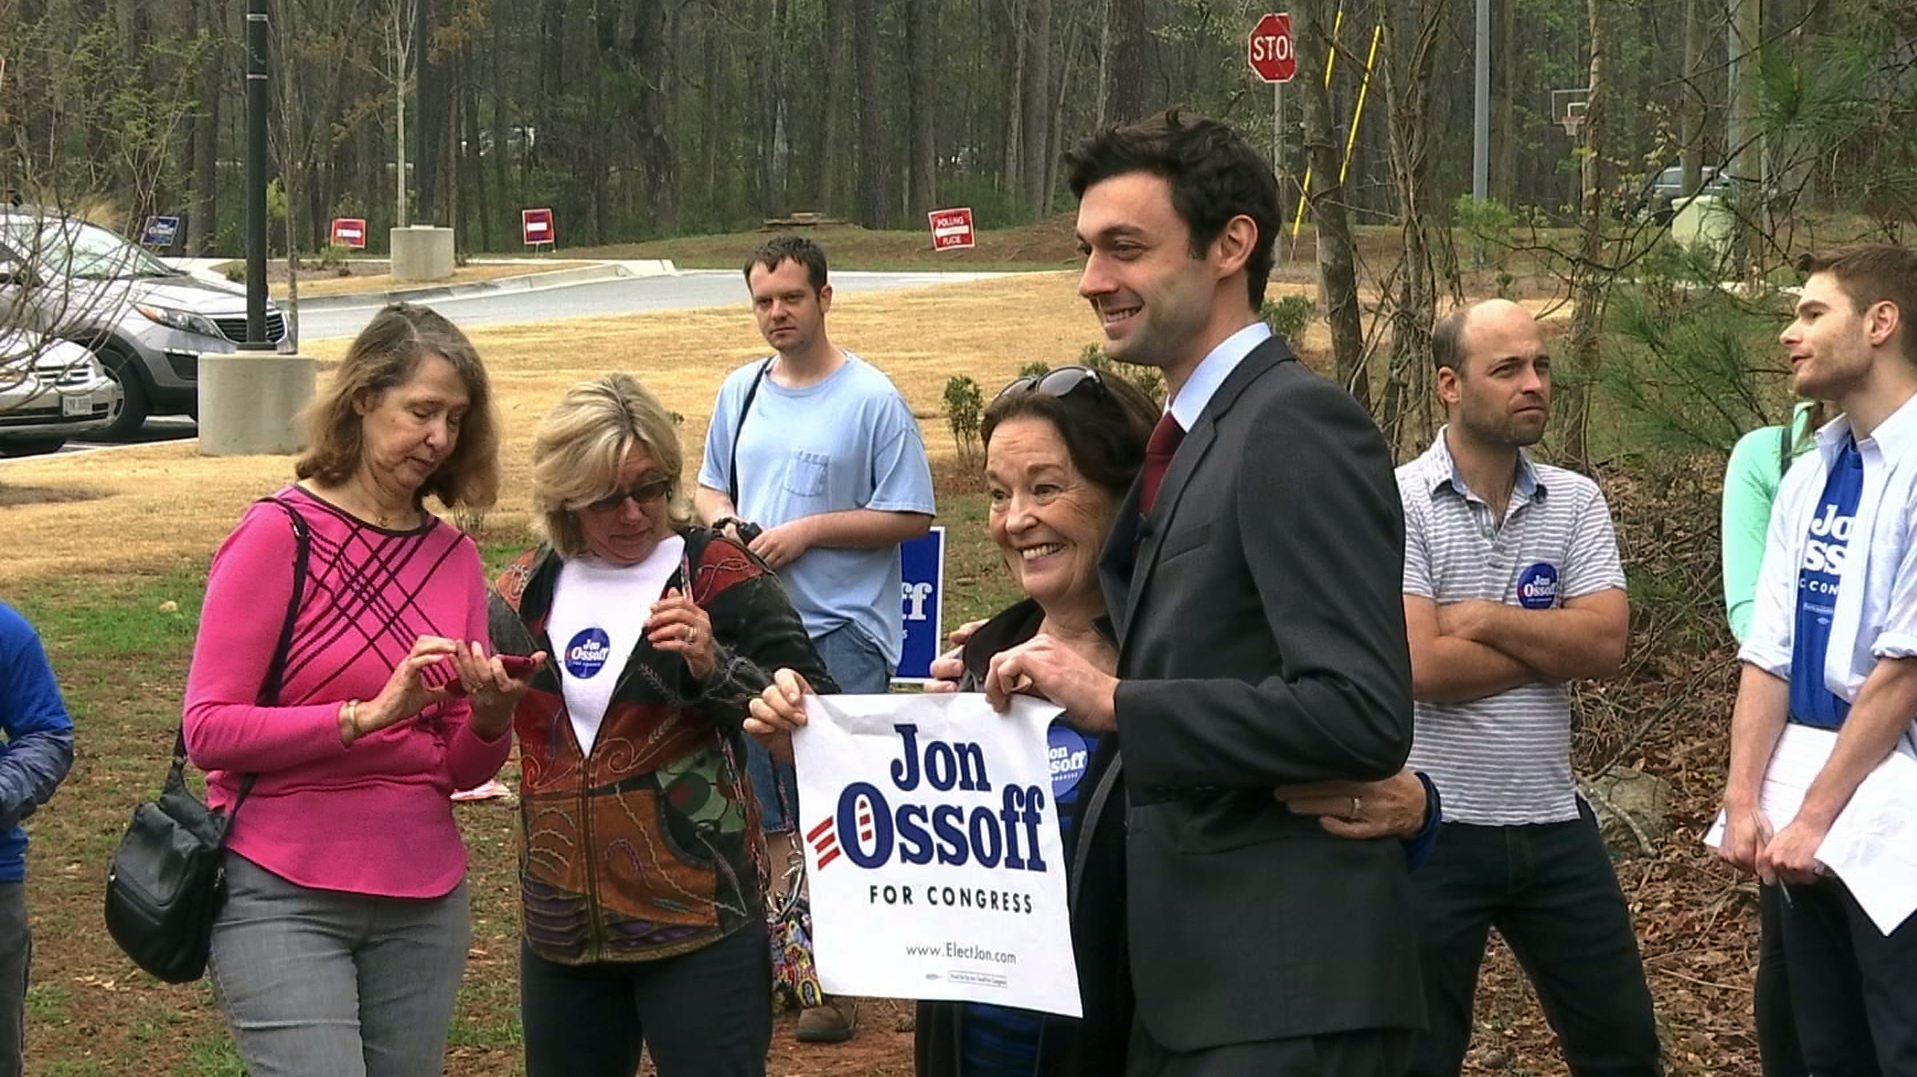 Democratic congressional candidate Jon Ossoff poses with supporters outside of the East Roswell Branch Library in Roswell, Ga.